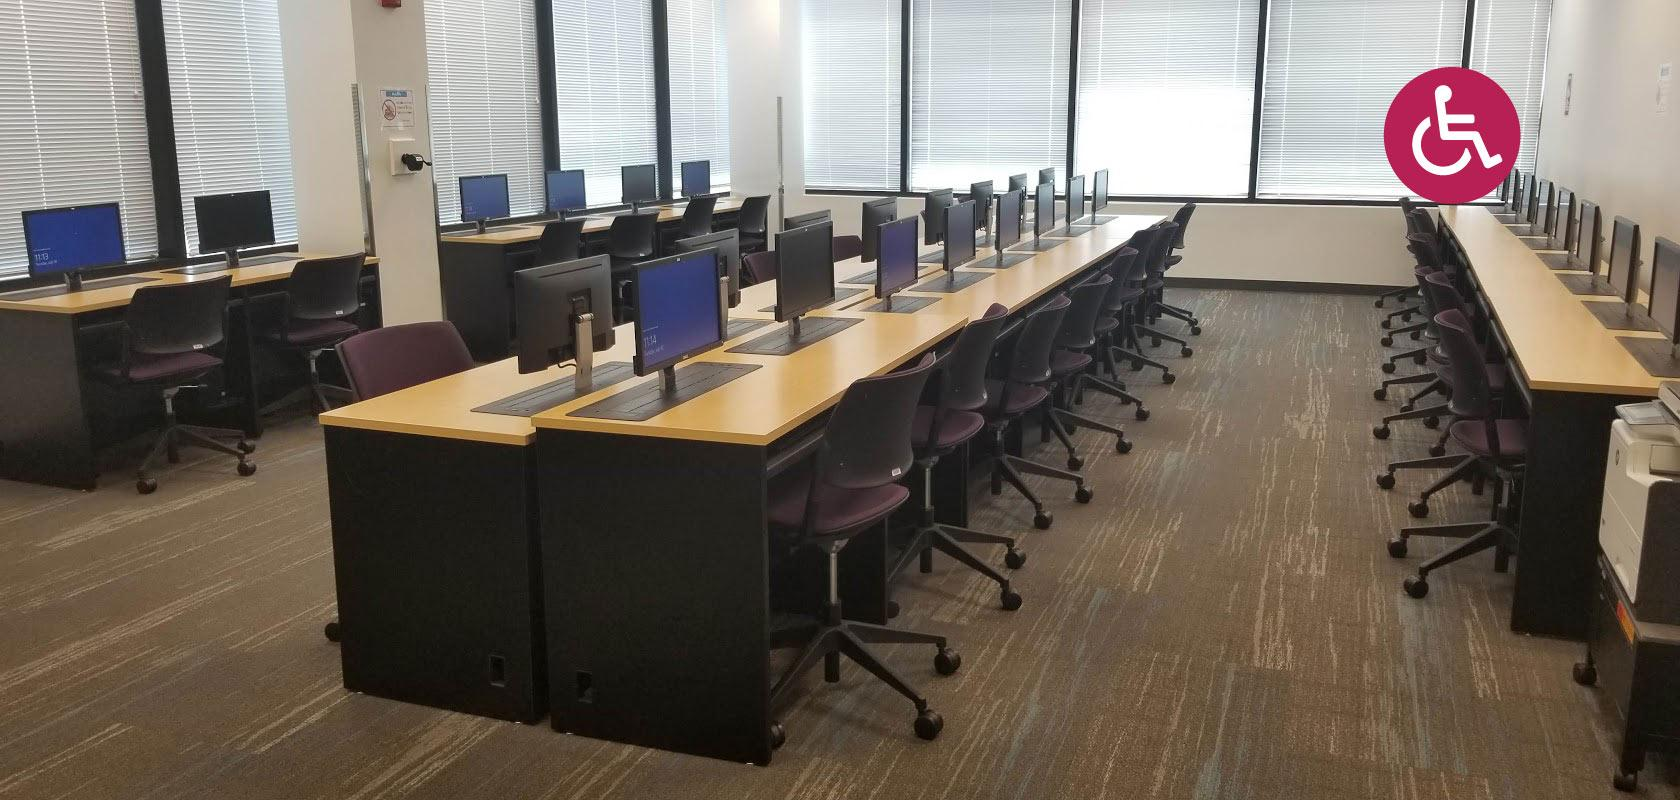 ADA compliant lecterns and computer desks